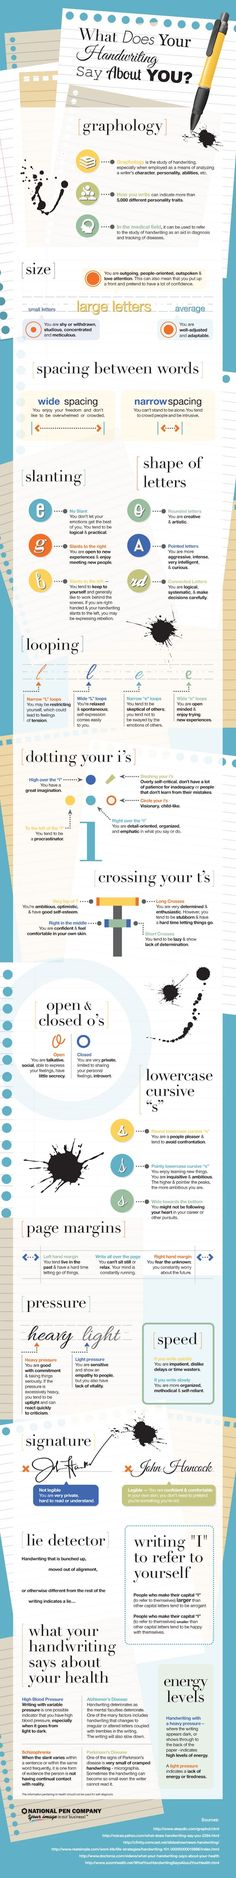 What Does Your Handwriting Reveal About Your Personality? | #infographic via @HubSpot